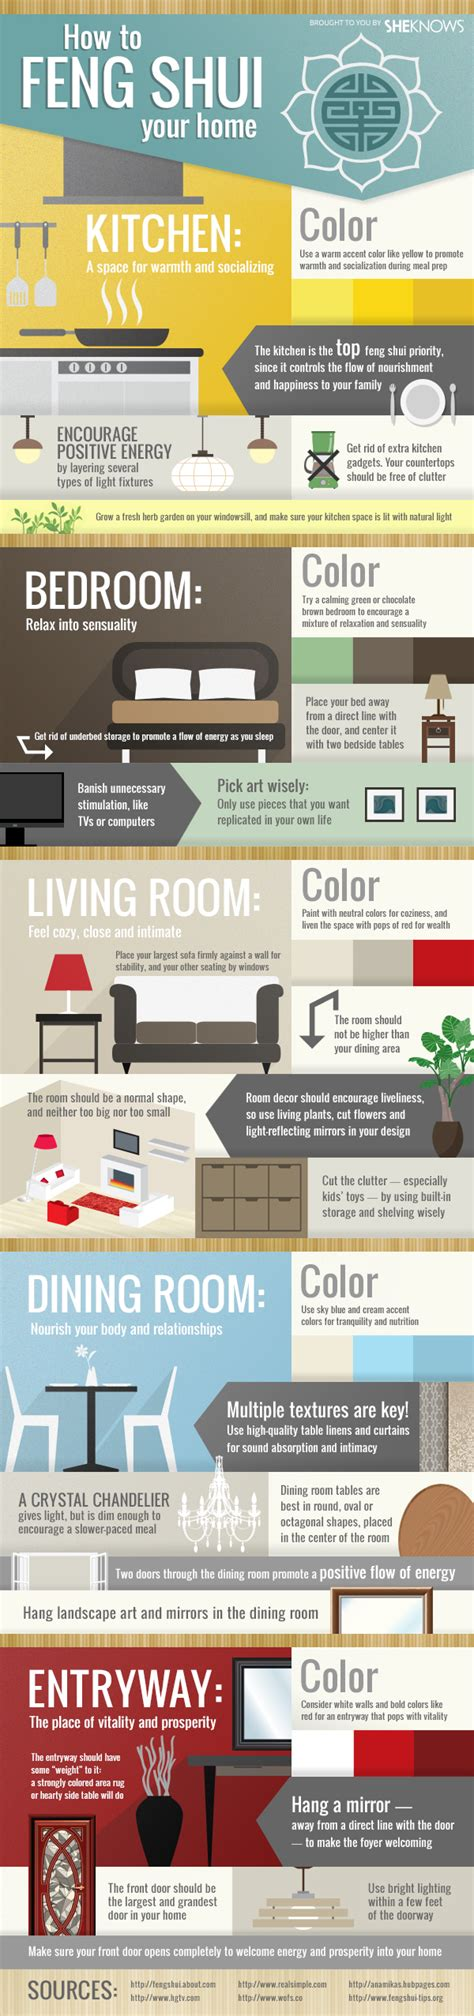 feng shui guide infographic a room by room guide to feng shui your home home decorating diy